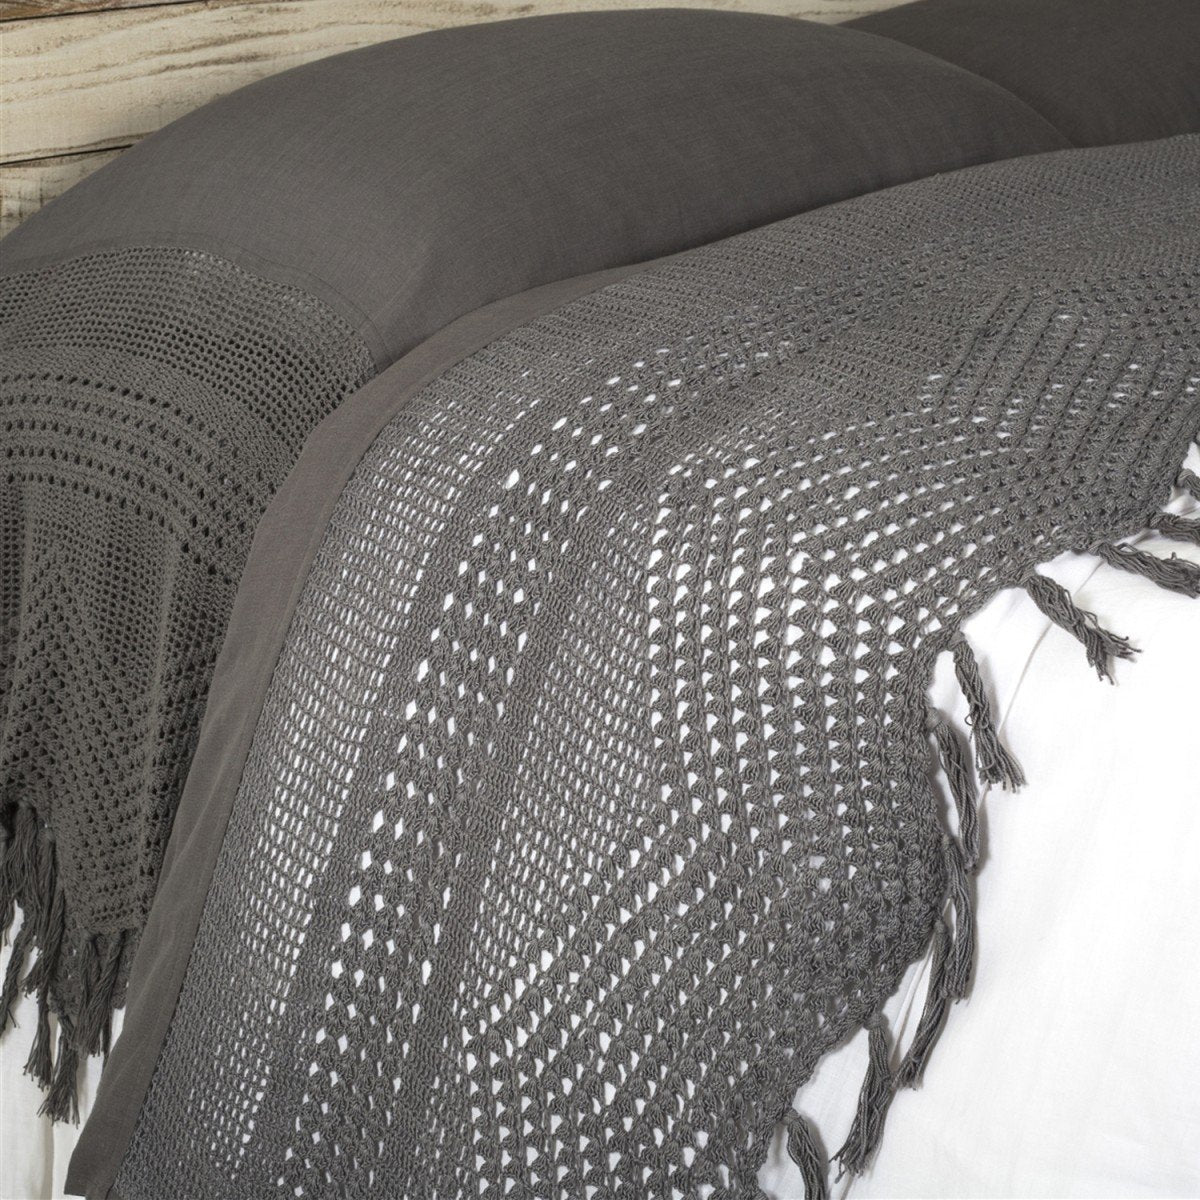 Vintage Crochet Flat Sheet by Pom Pom at Home-Bed & Bath-Pom Pom-Queen-Midnight-A Cottage in the City